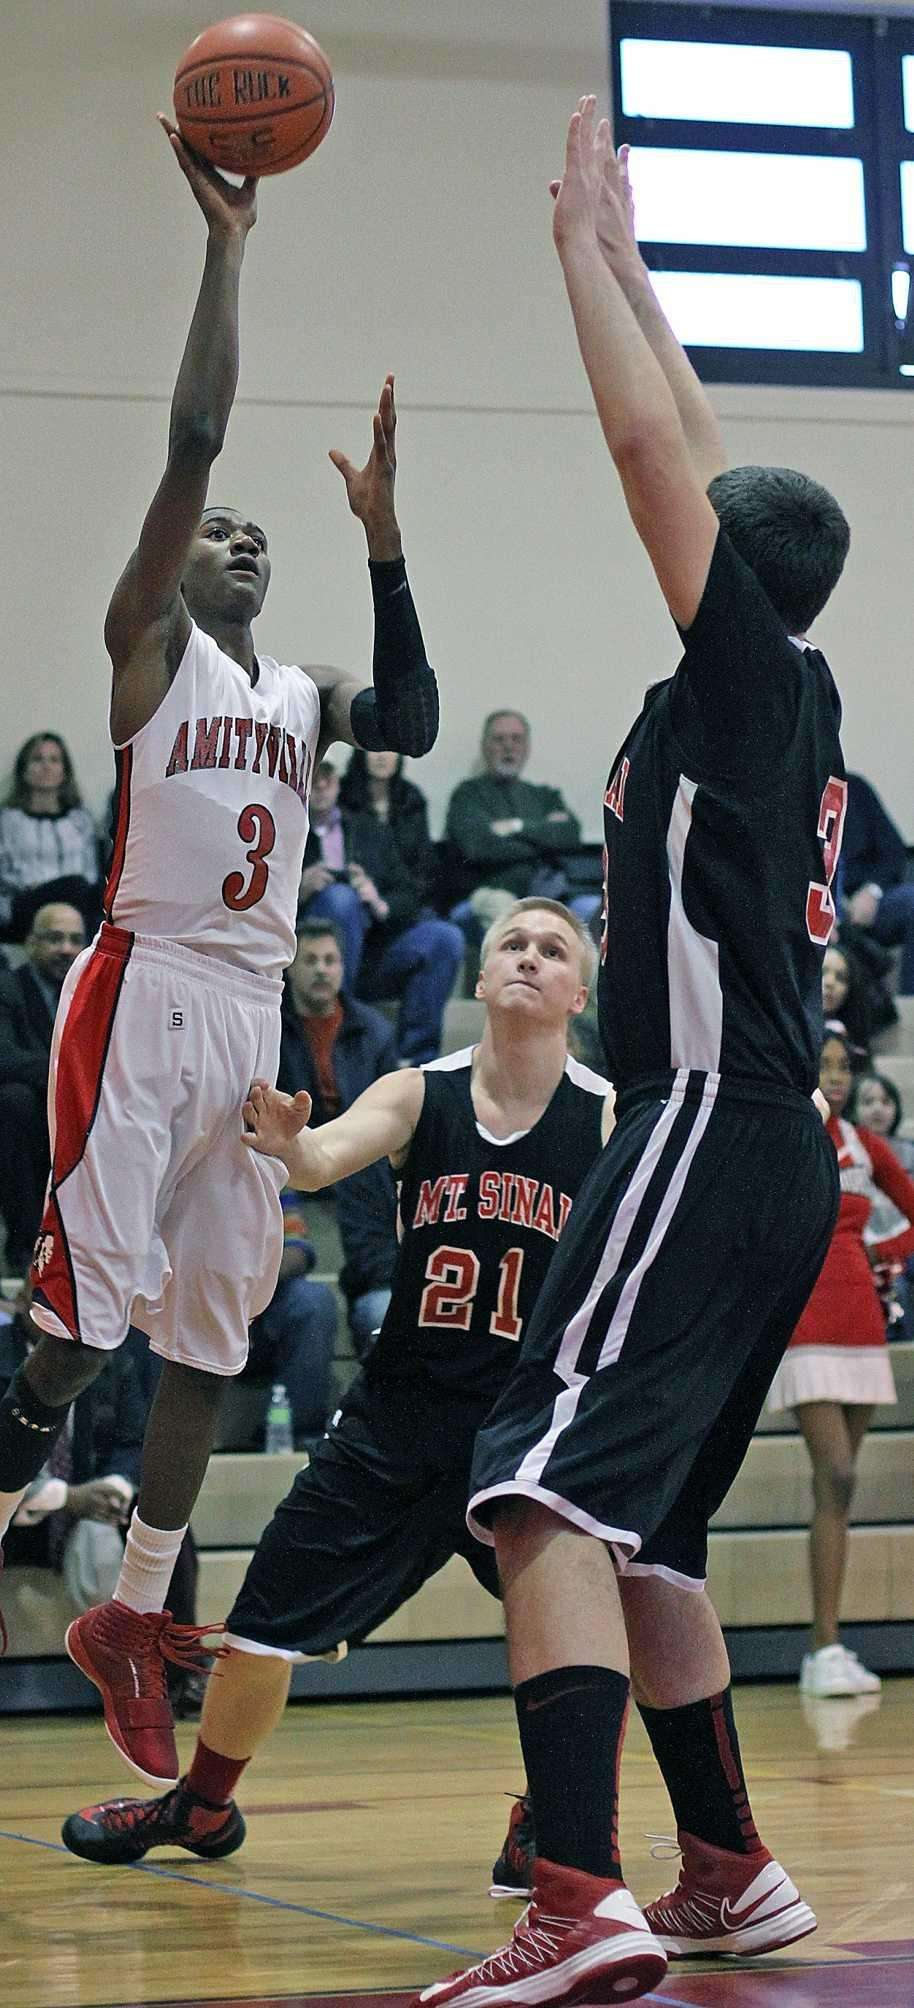 Amityville's Travis Dickerson shoots over Mt. Sinai's Michael